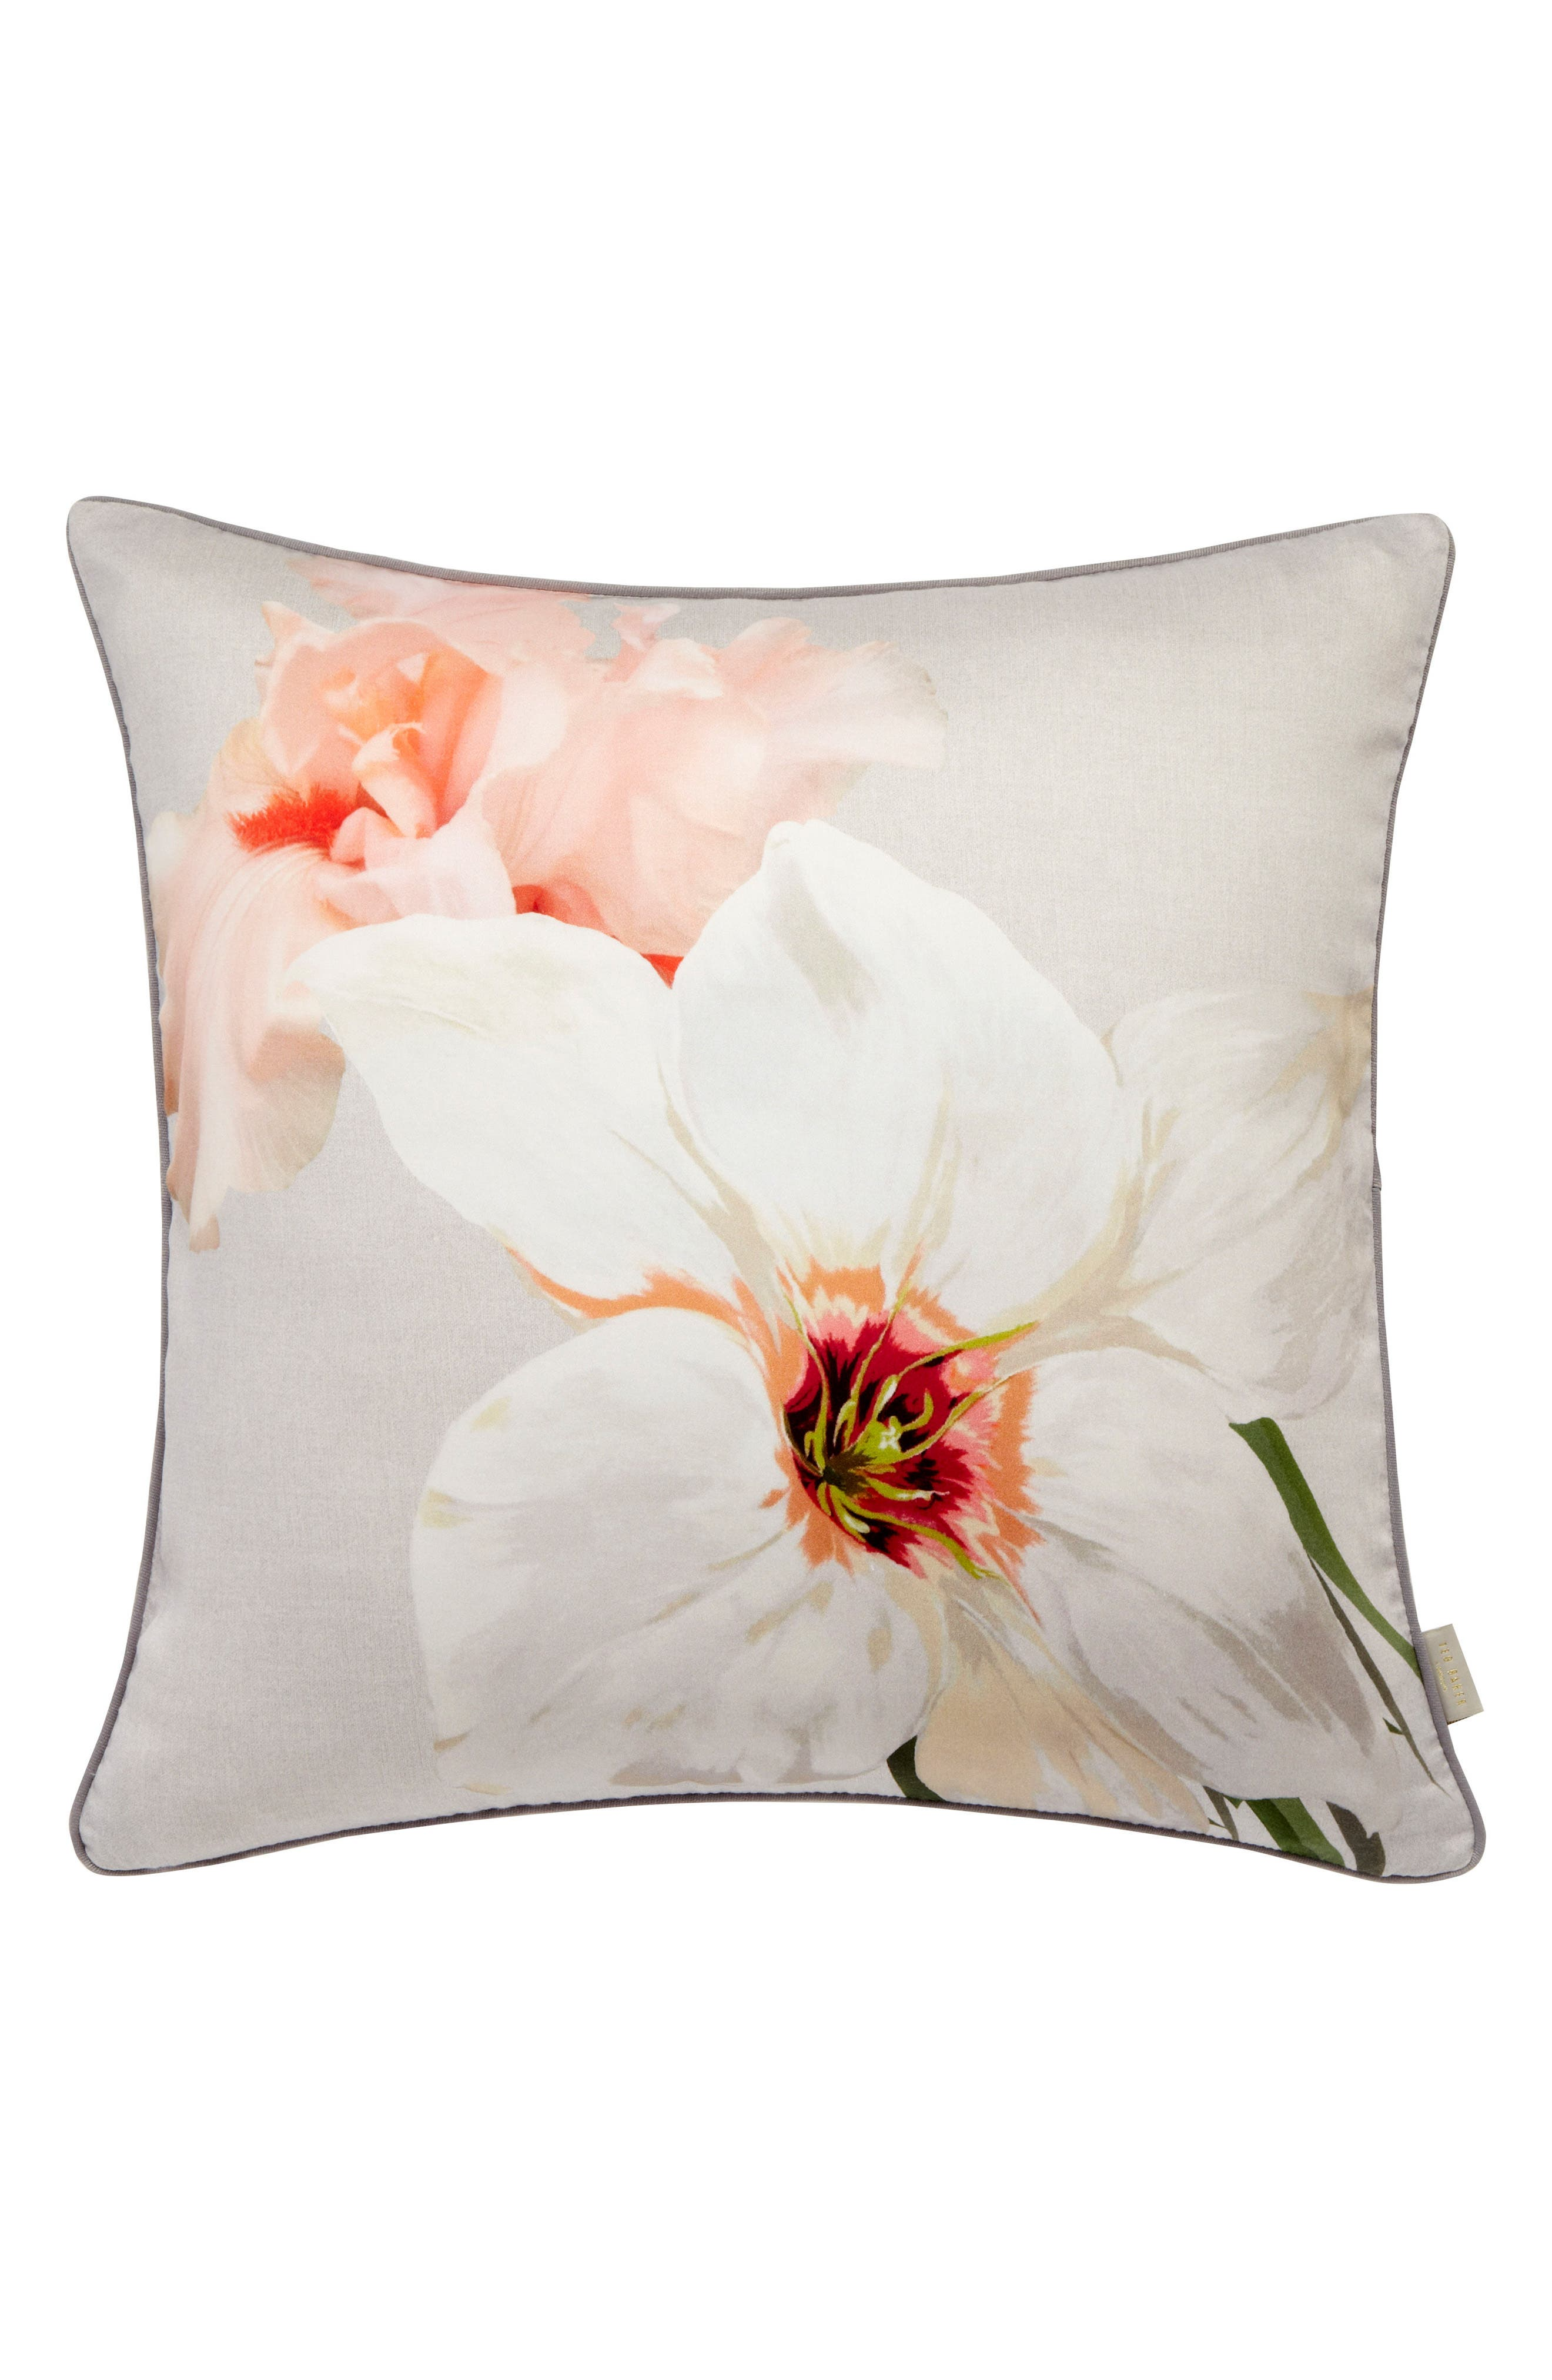 Chatsworth Accent Pillow,                             Main thumbnail 1, color,                             Grey/ Multi